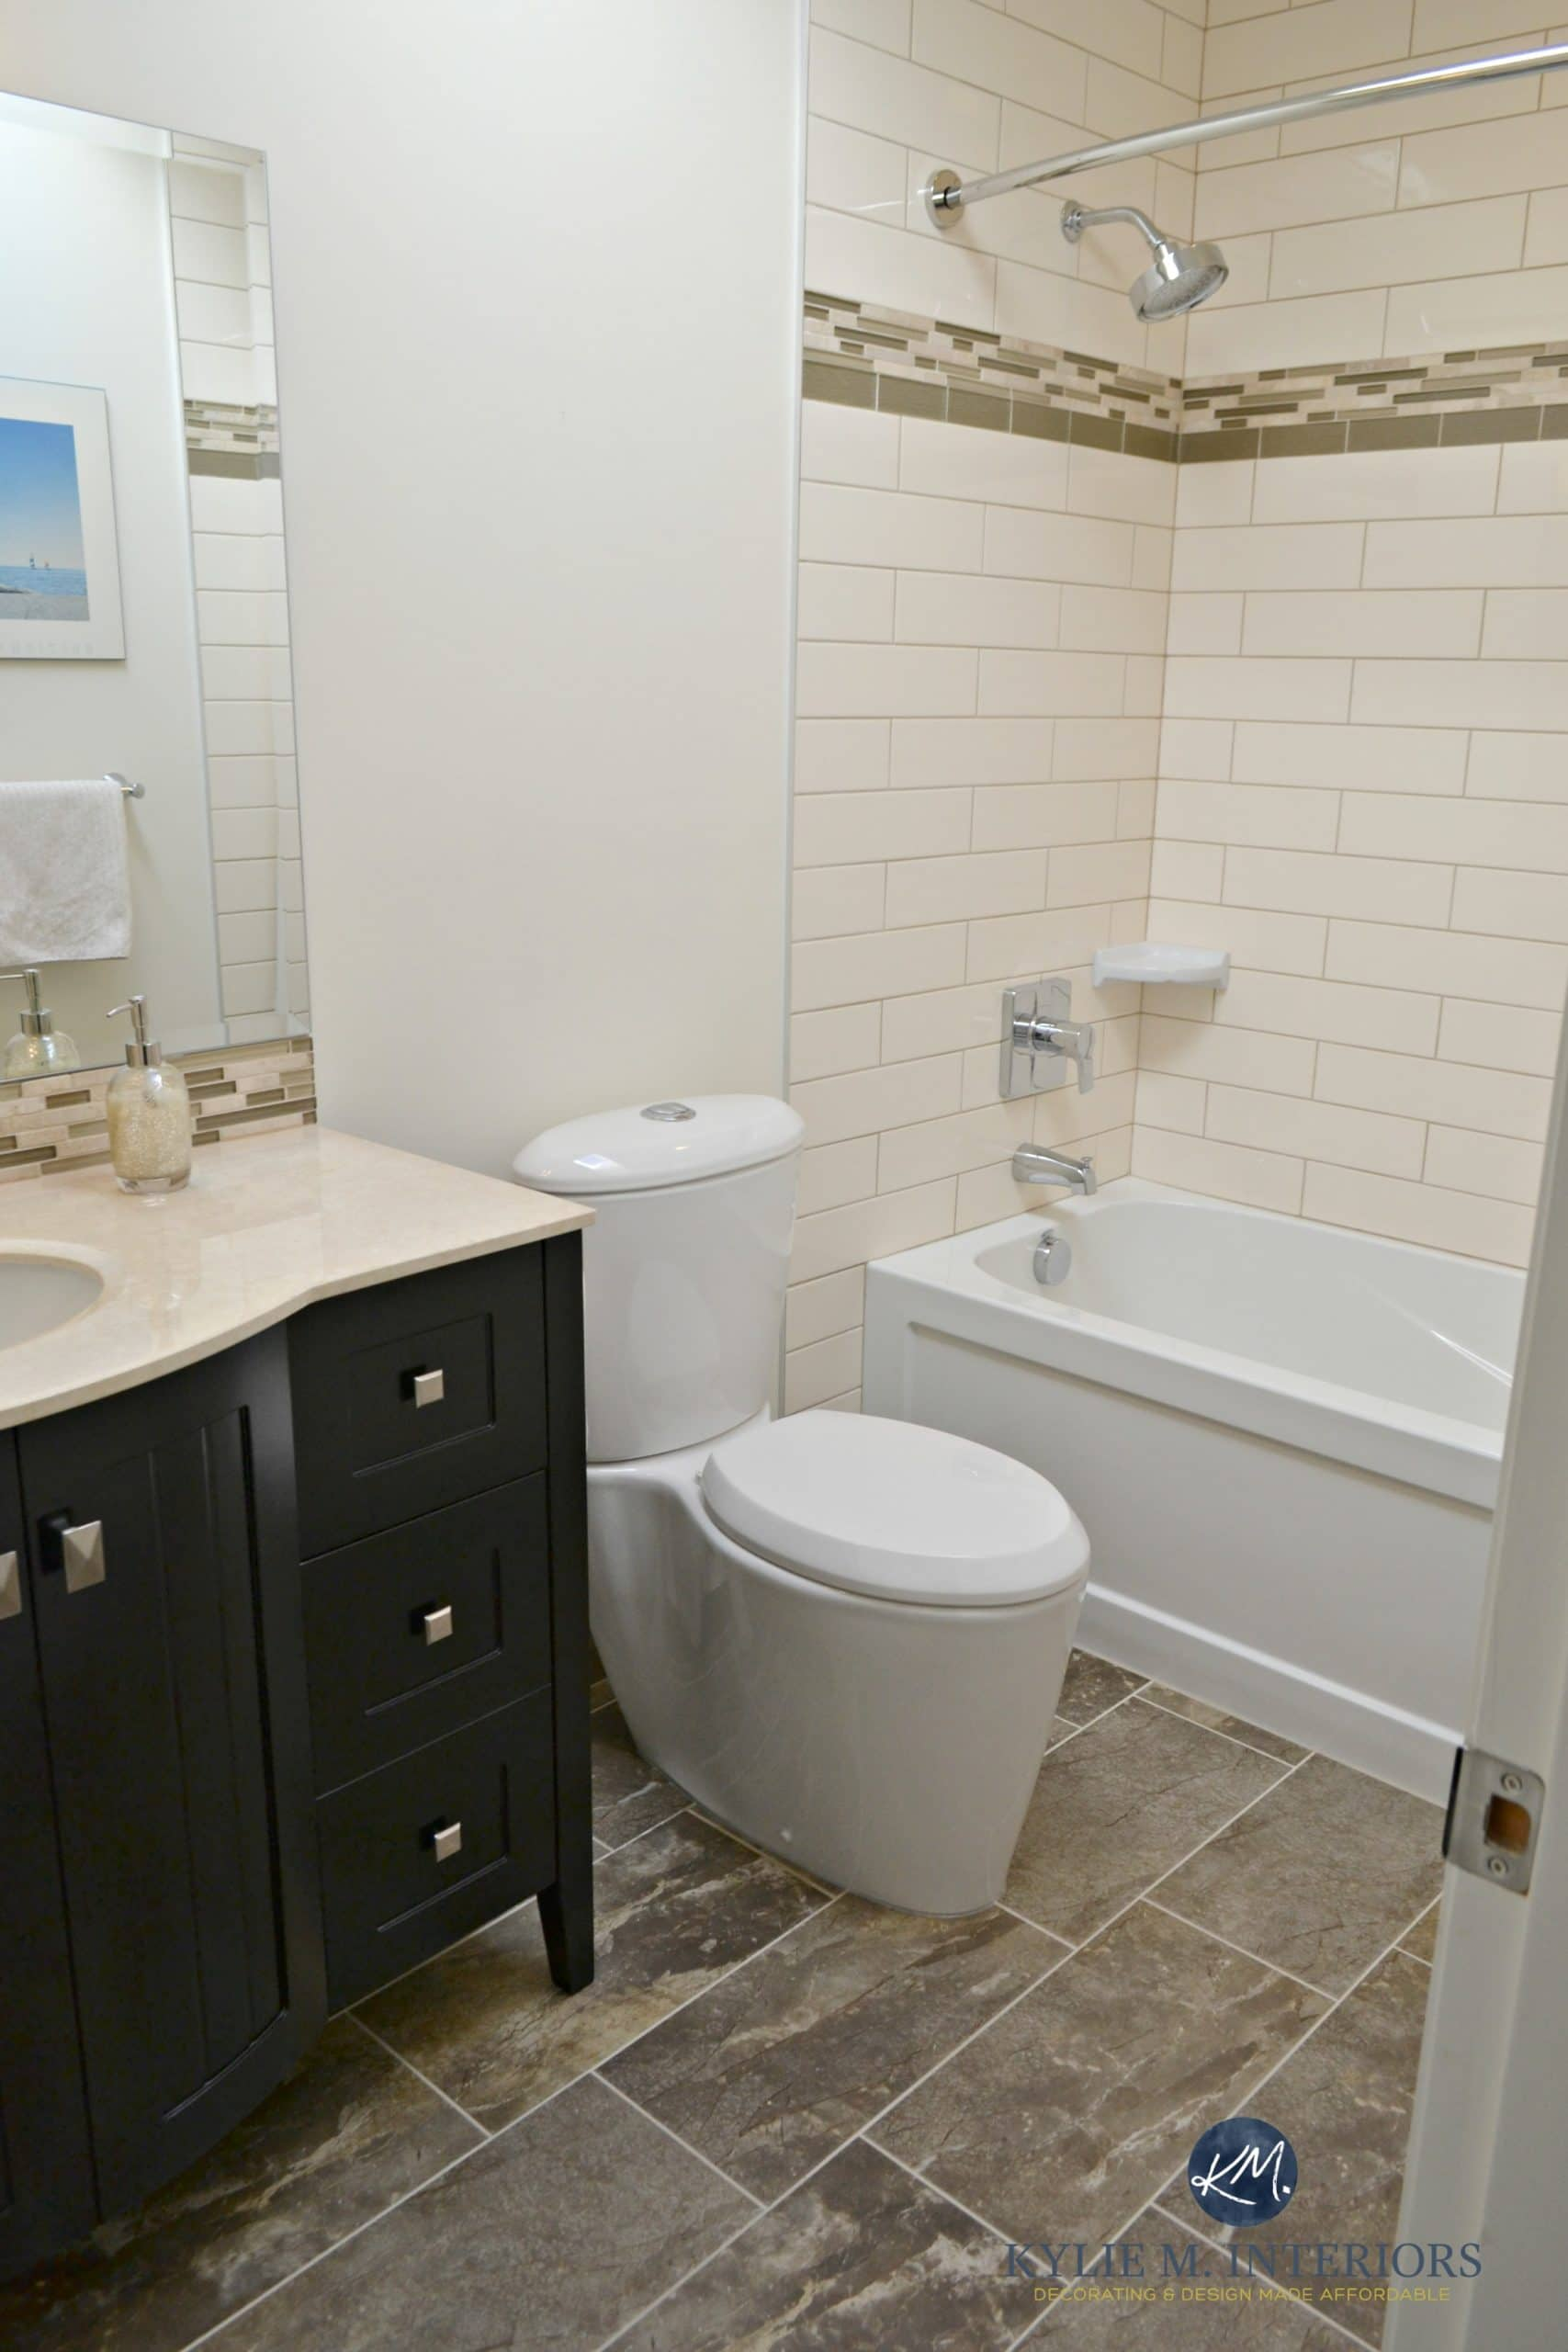 Subway Tiled Bathrooms Update To An Almond Bathroom With Cream Elongated Subway Tiles